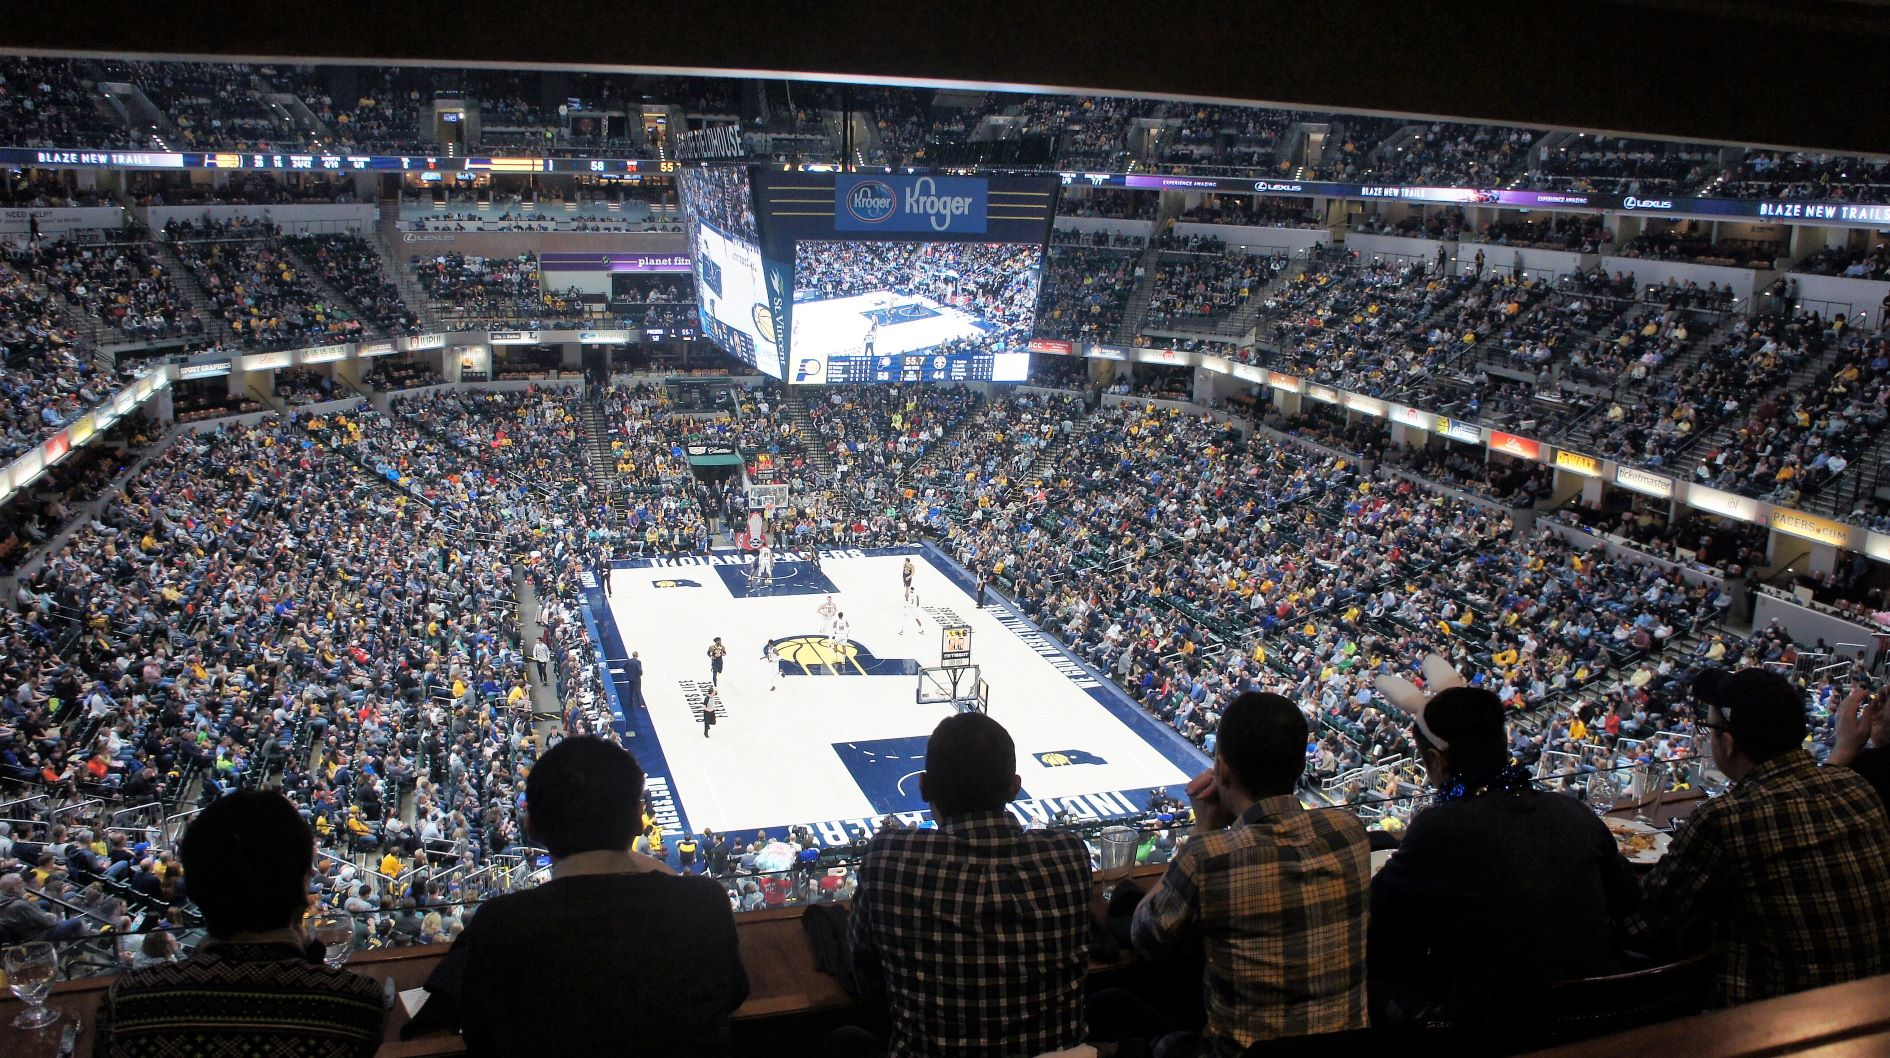 Bankers Life Fieldhouse Indiana Pacers Stadium Journey